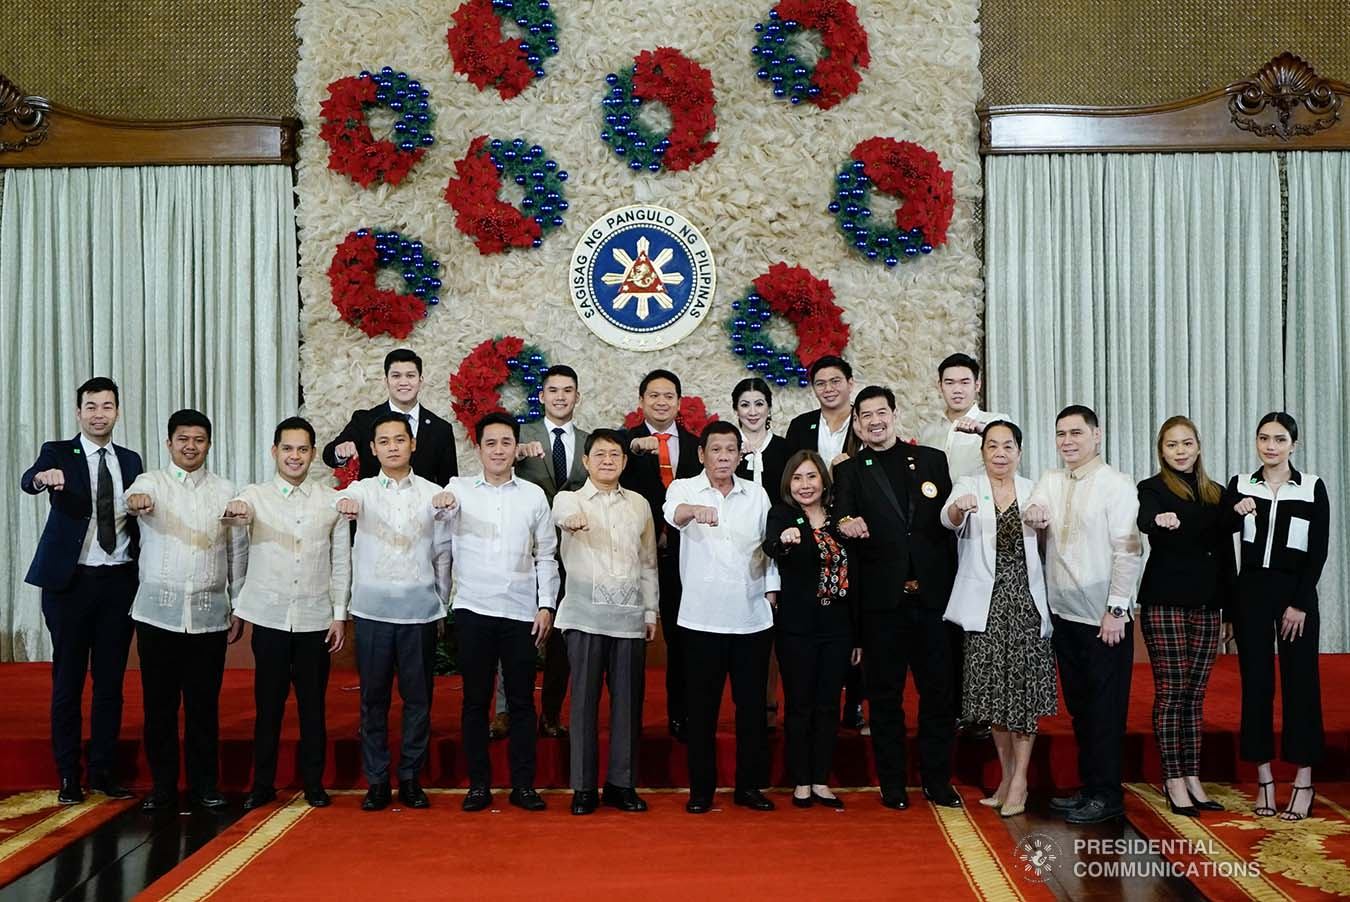 President Rodrigo Roa Duterte strikes his signature pose with the officials of the Department of Interior and Local Government during the ceremonial signing of the Postponement of the 2020 Barangay and Sangguniang Kabataan Elections Act and the Malasakit Center Act at the Malacañan Palace on December 3, 2019. KING RODRIGUEZ/PRESIDENTIAL PHOTO